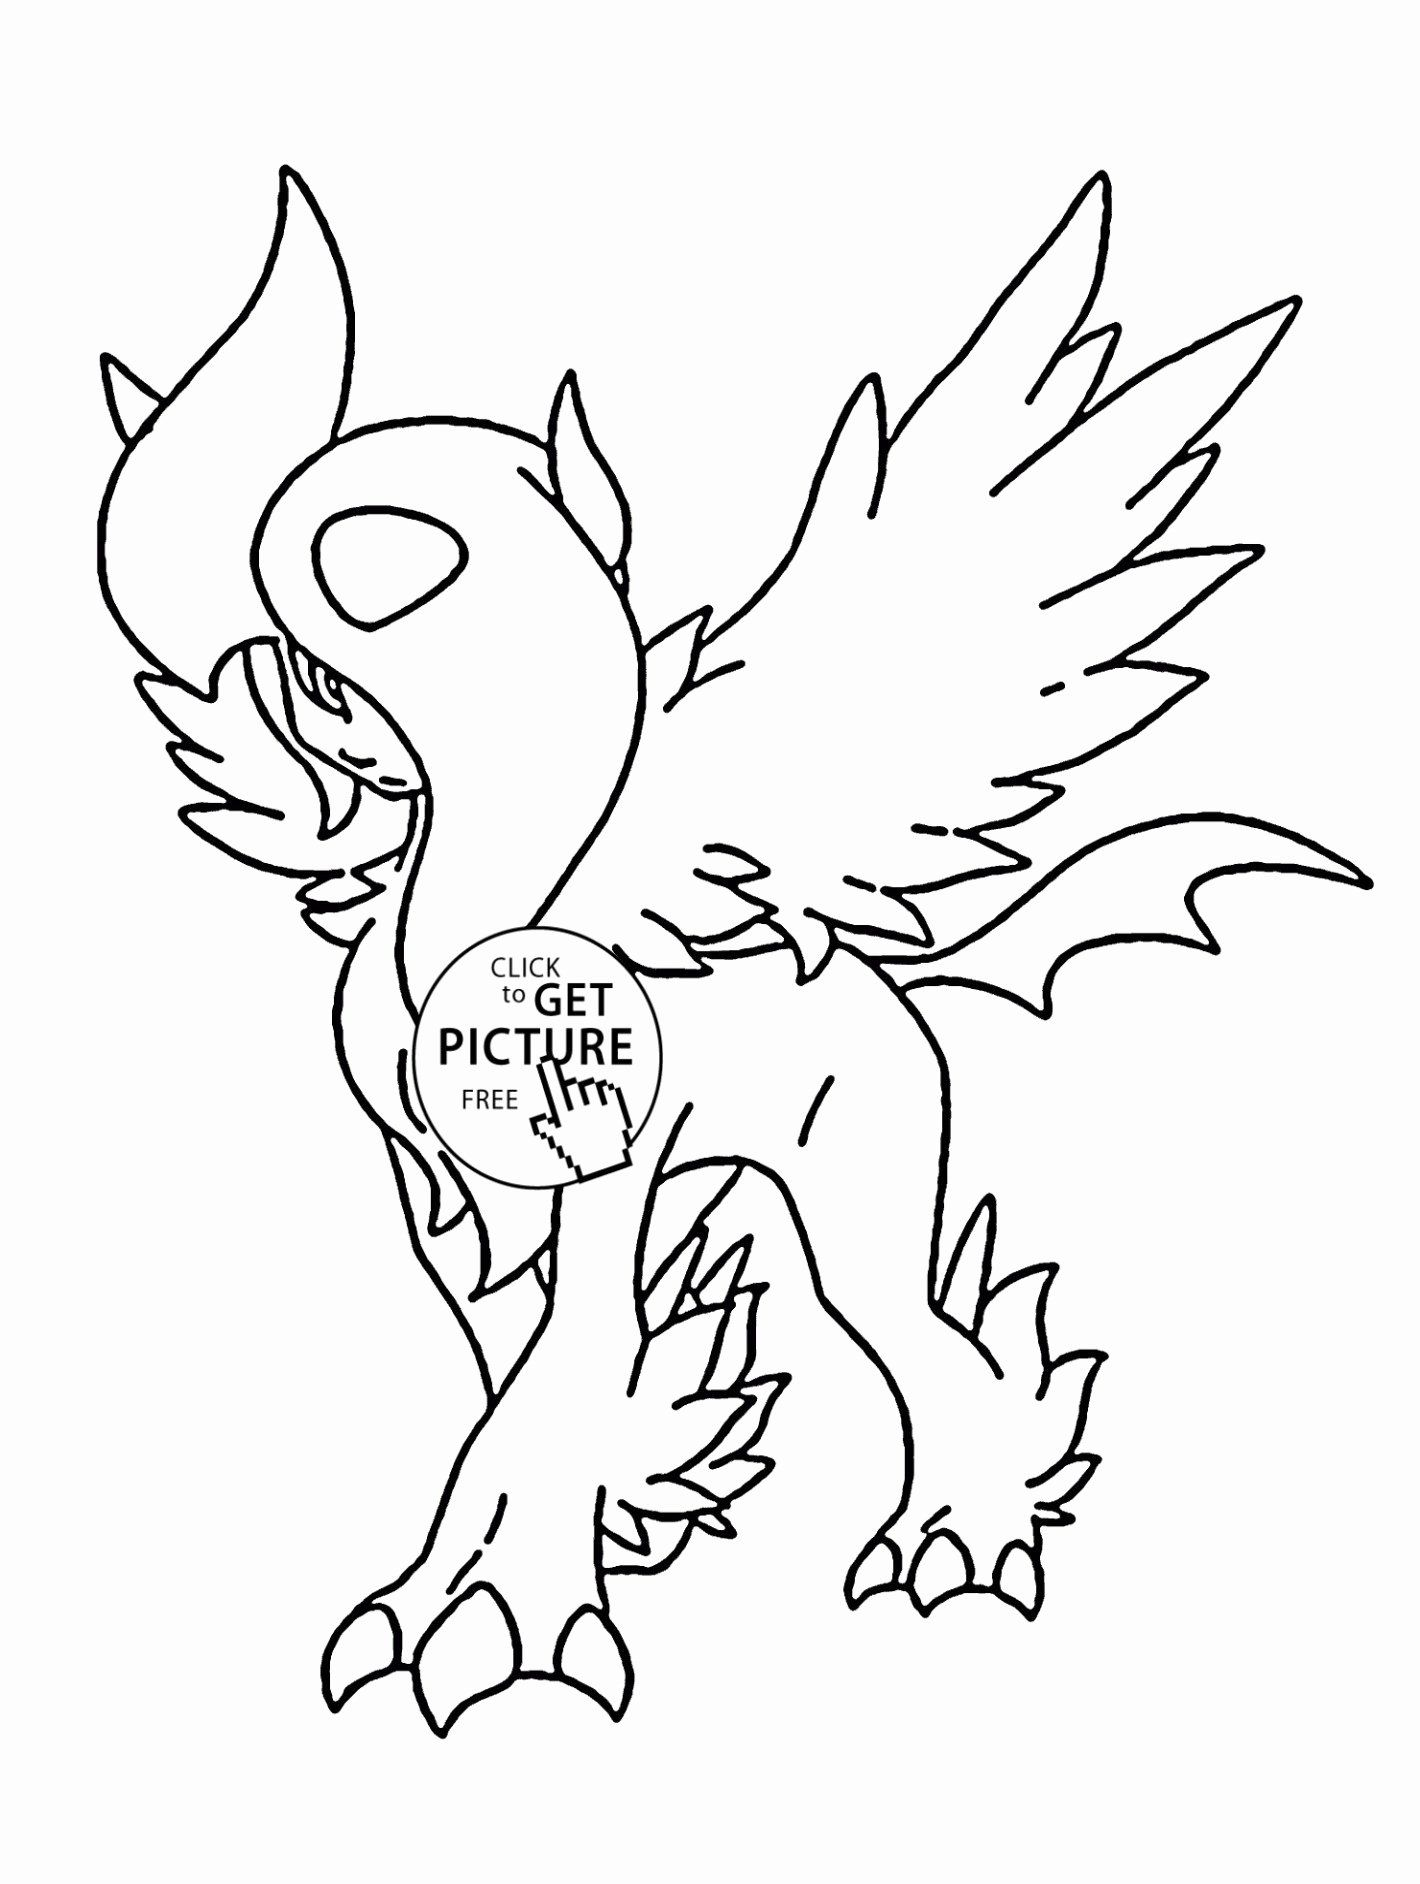 Flowers Number Coloring Pages Best Of Pokemon Coloring Page Best Vases Flower Vase Coloring Page